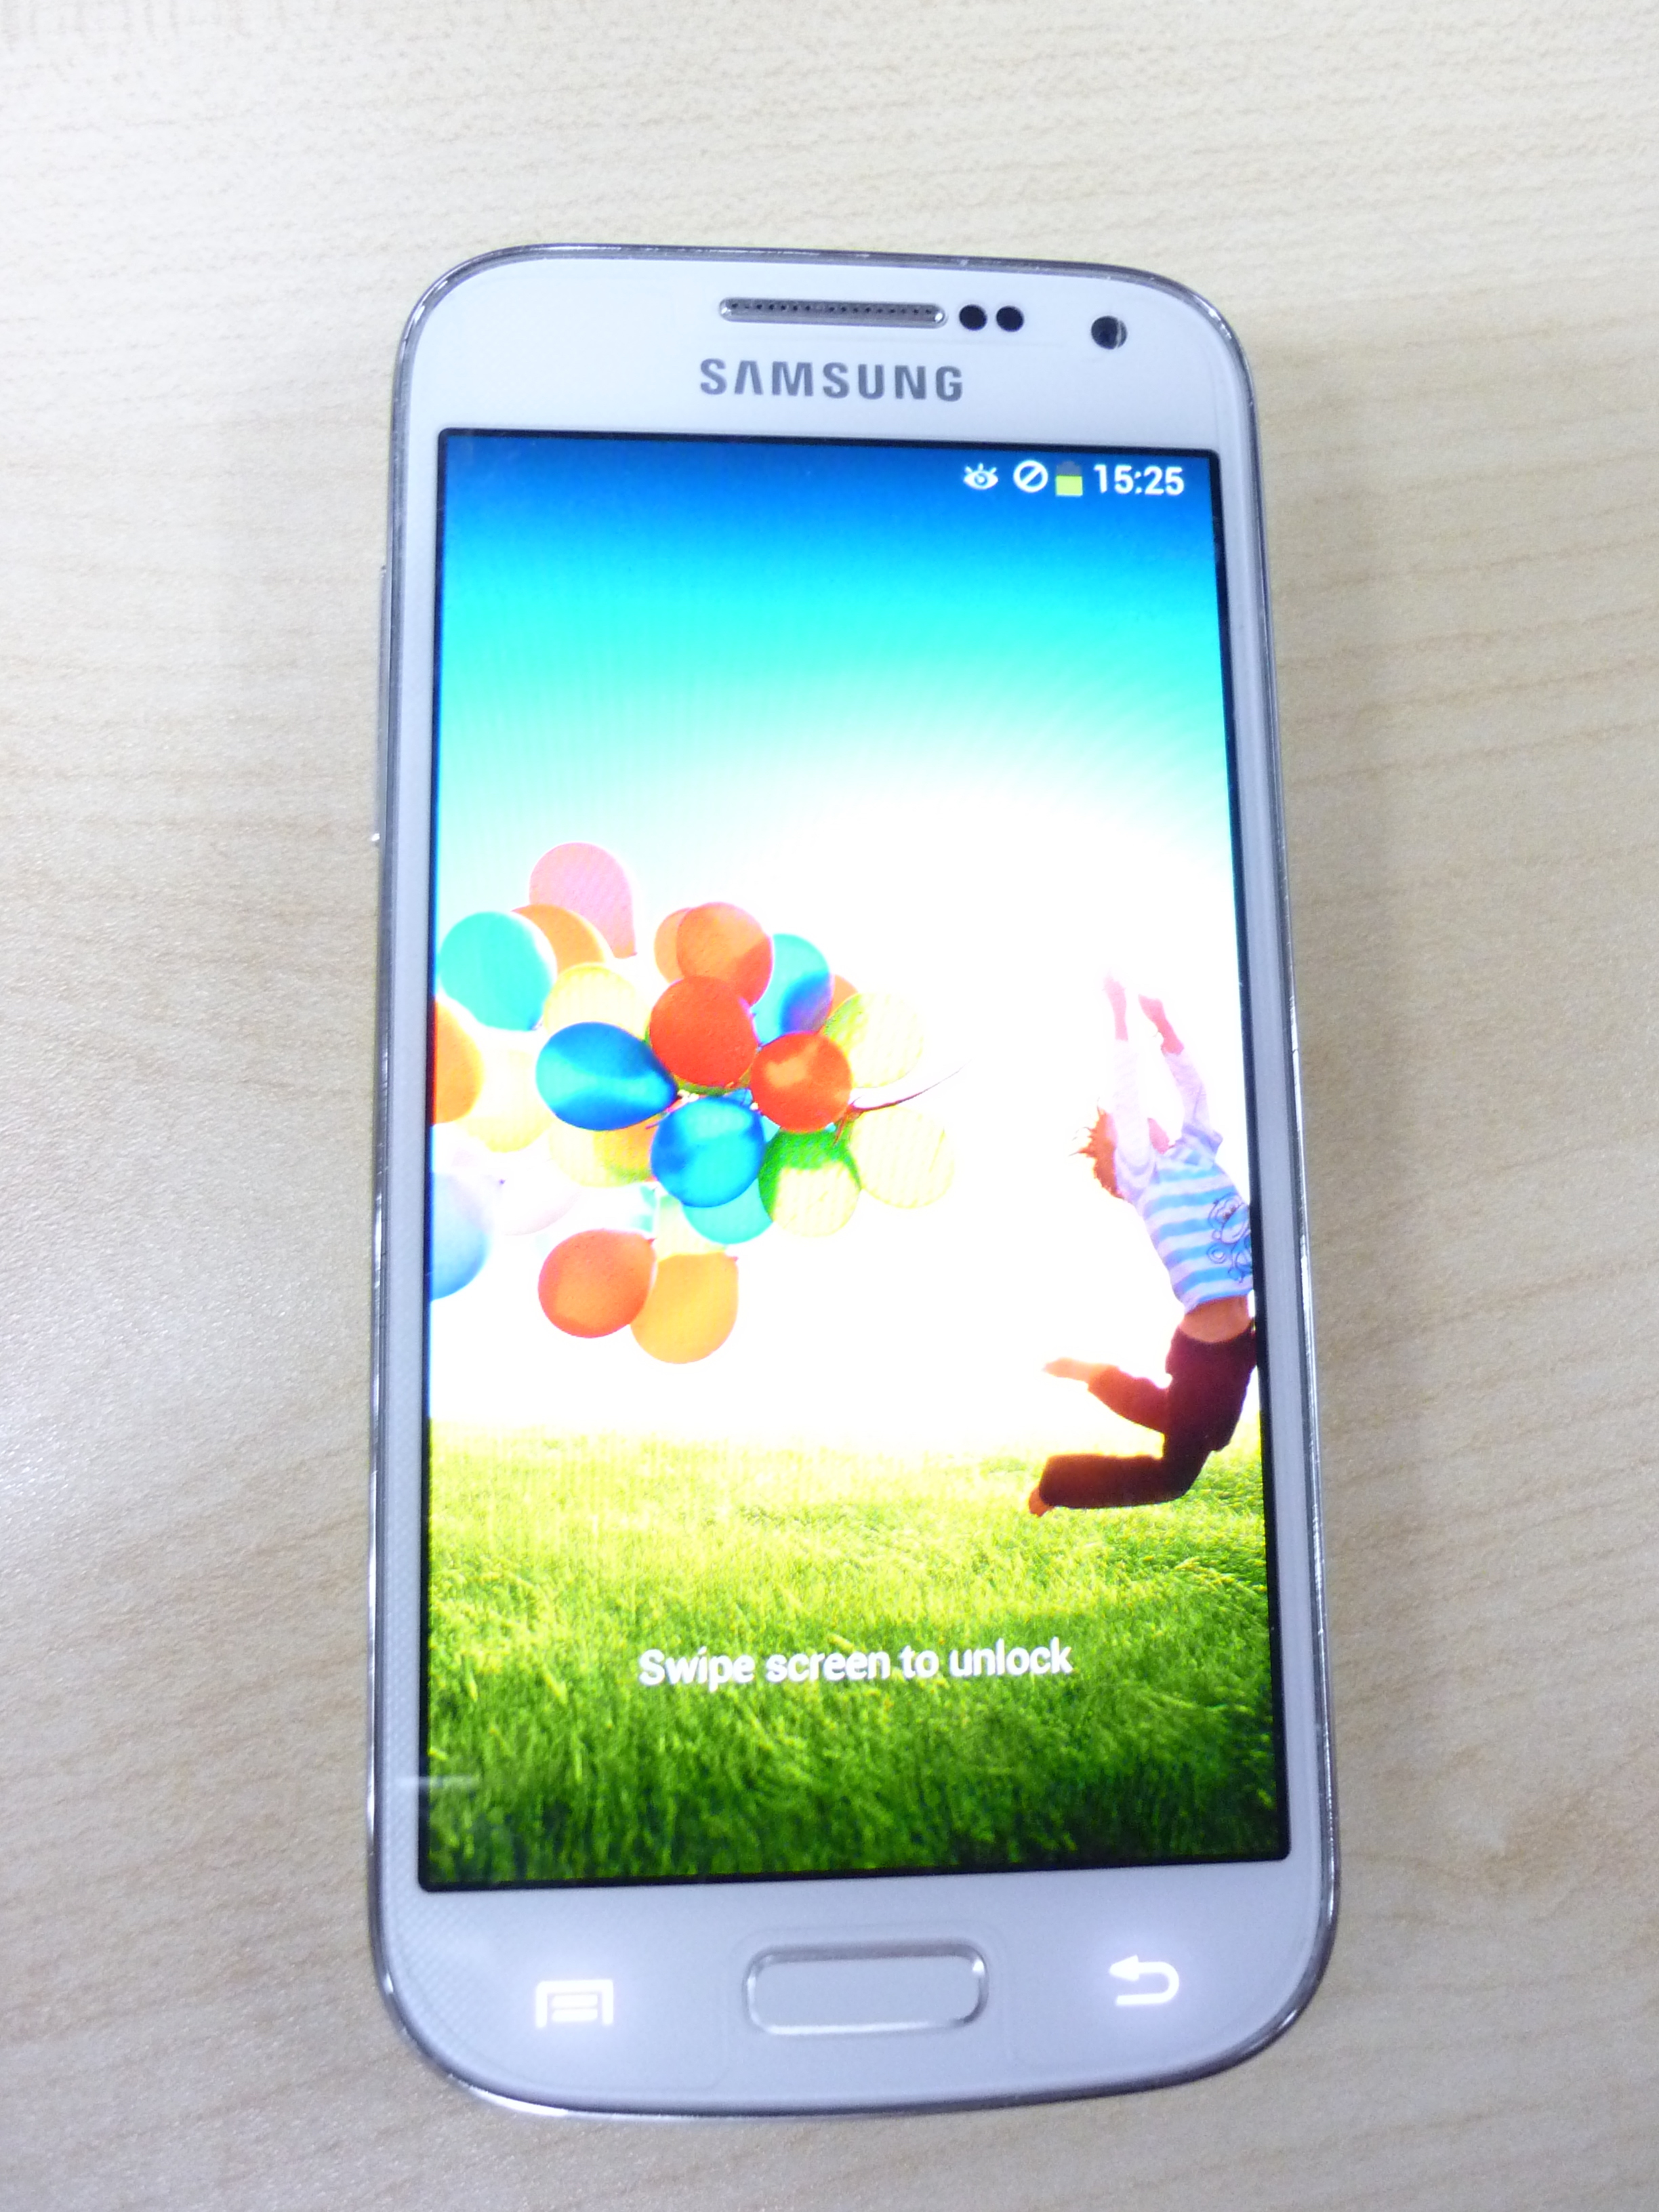 Samsung Galaxy S4 Mini Used Hotel Items